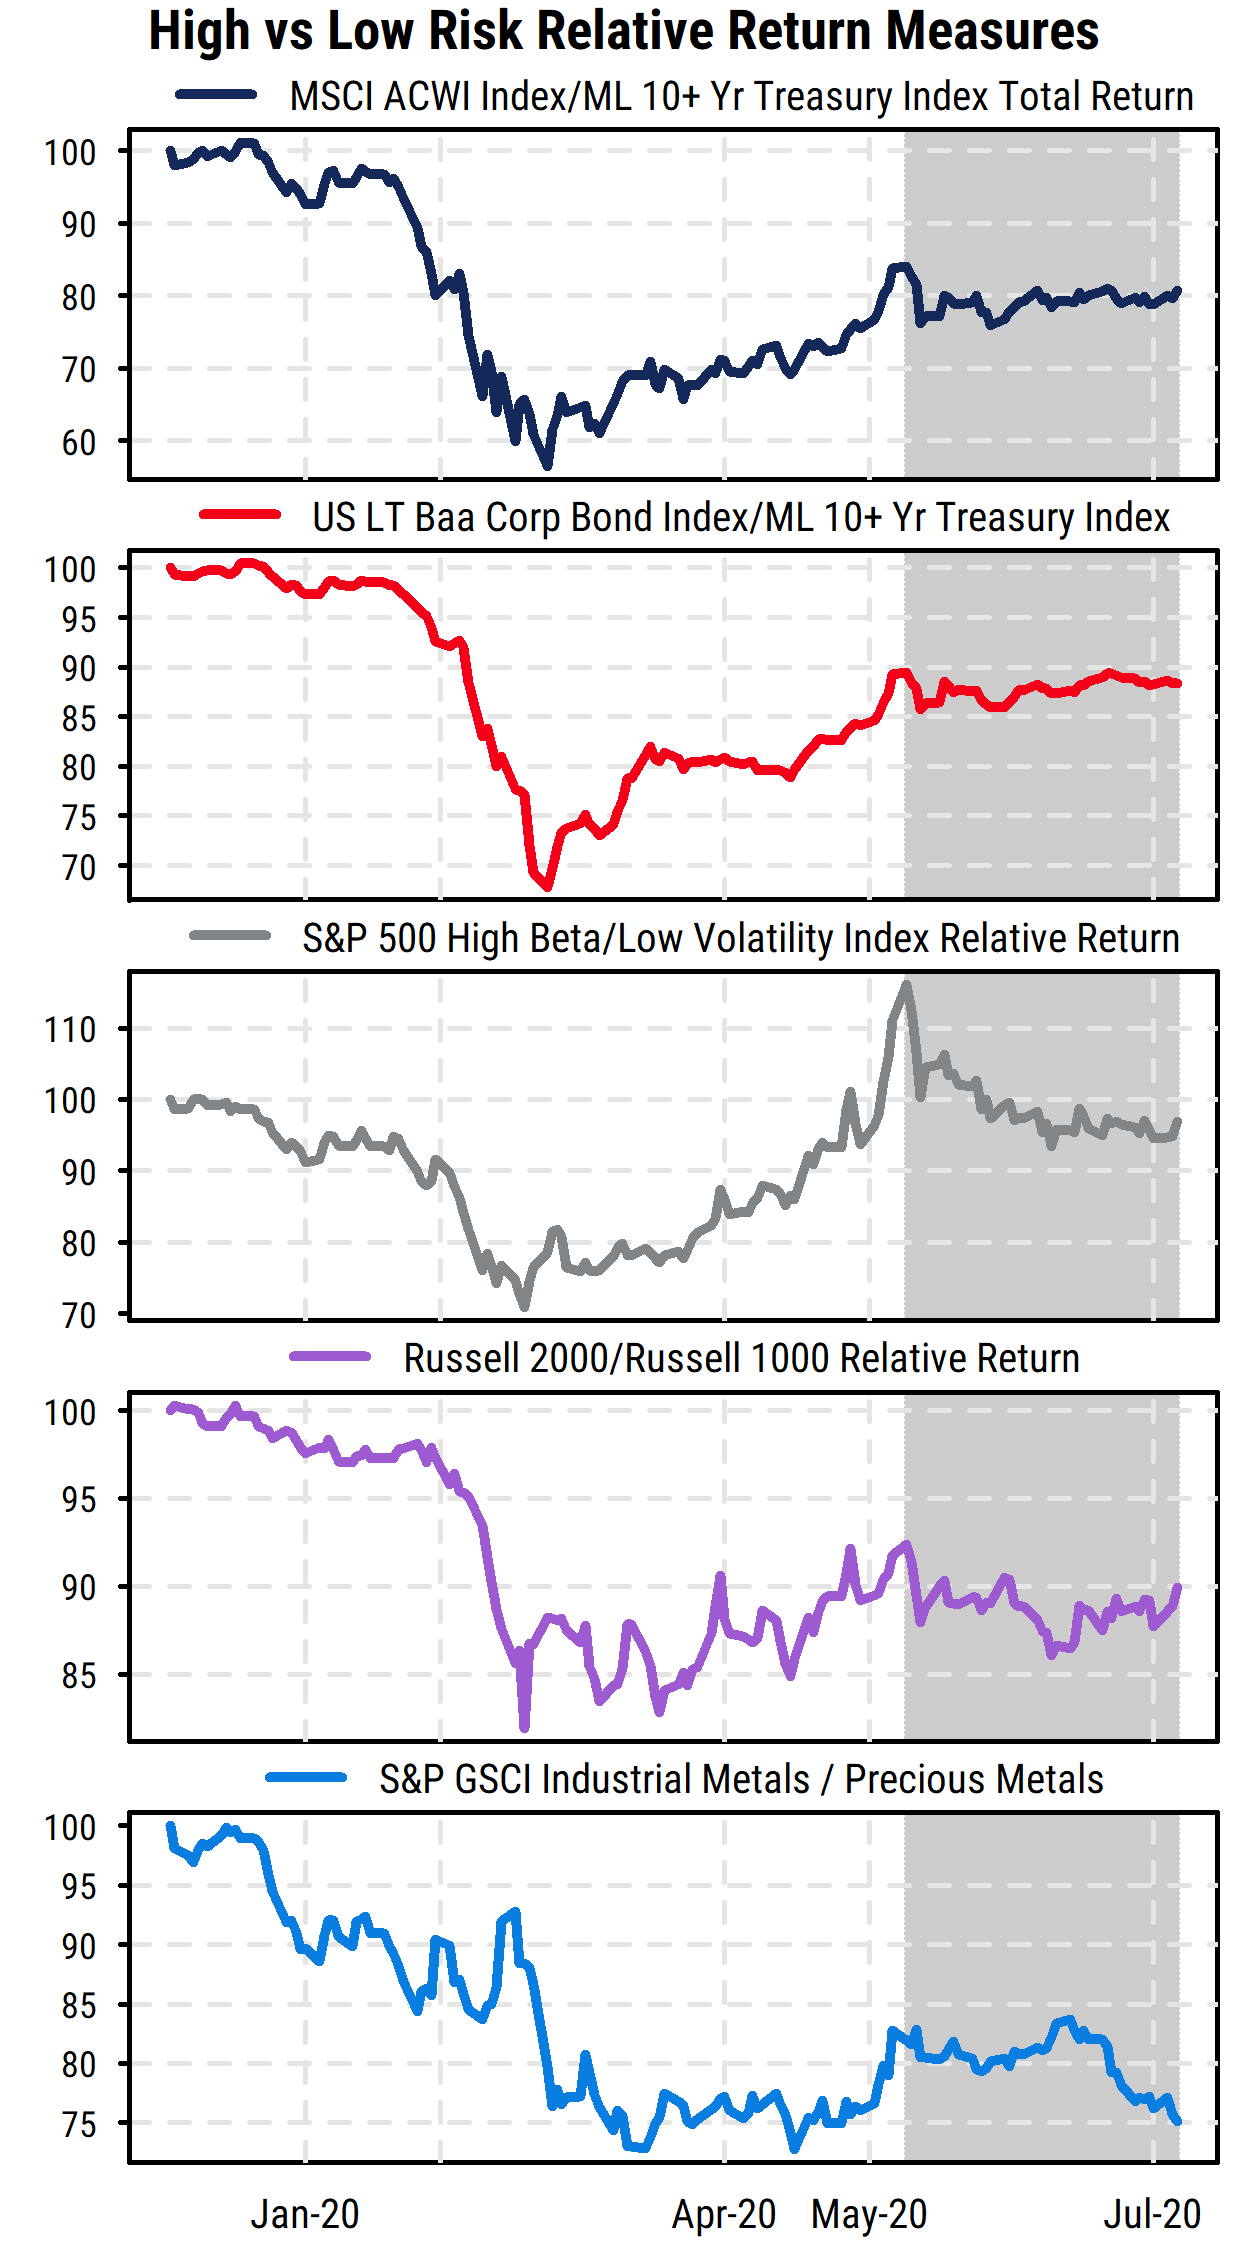 High vs Low Risk Relative Return Measures